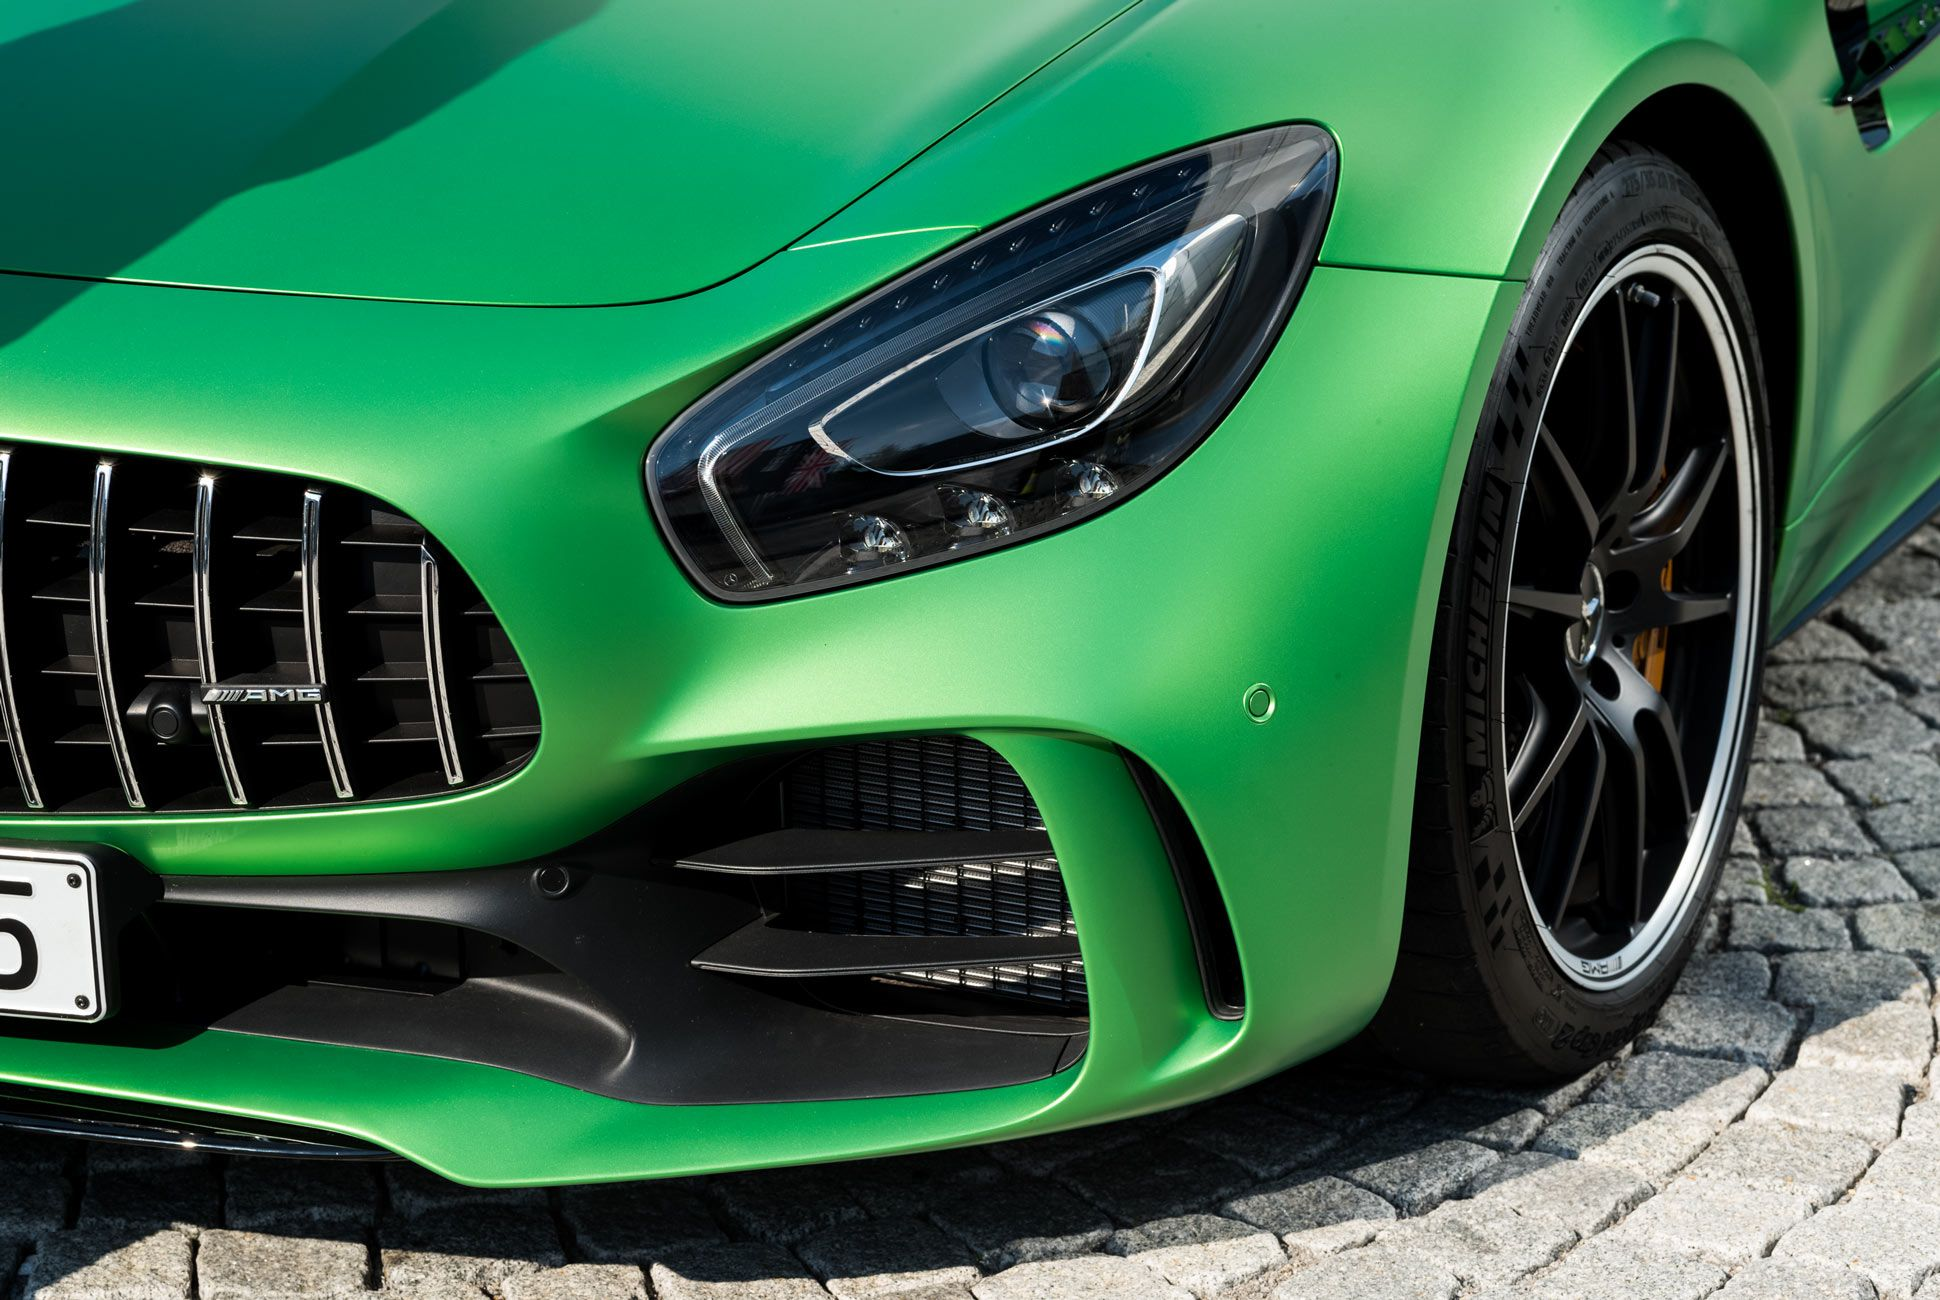 The Mercedes-AMG GT R (like the SLS before it) is as close as you'll get to a fully AMG-designed car.